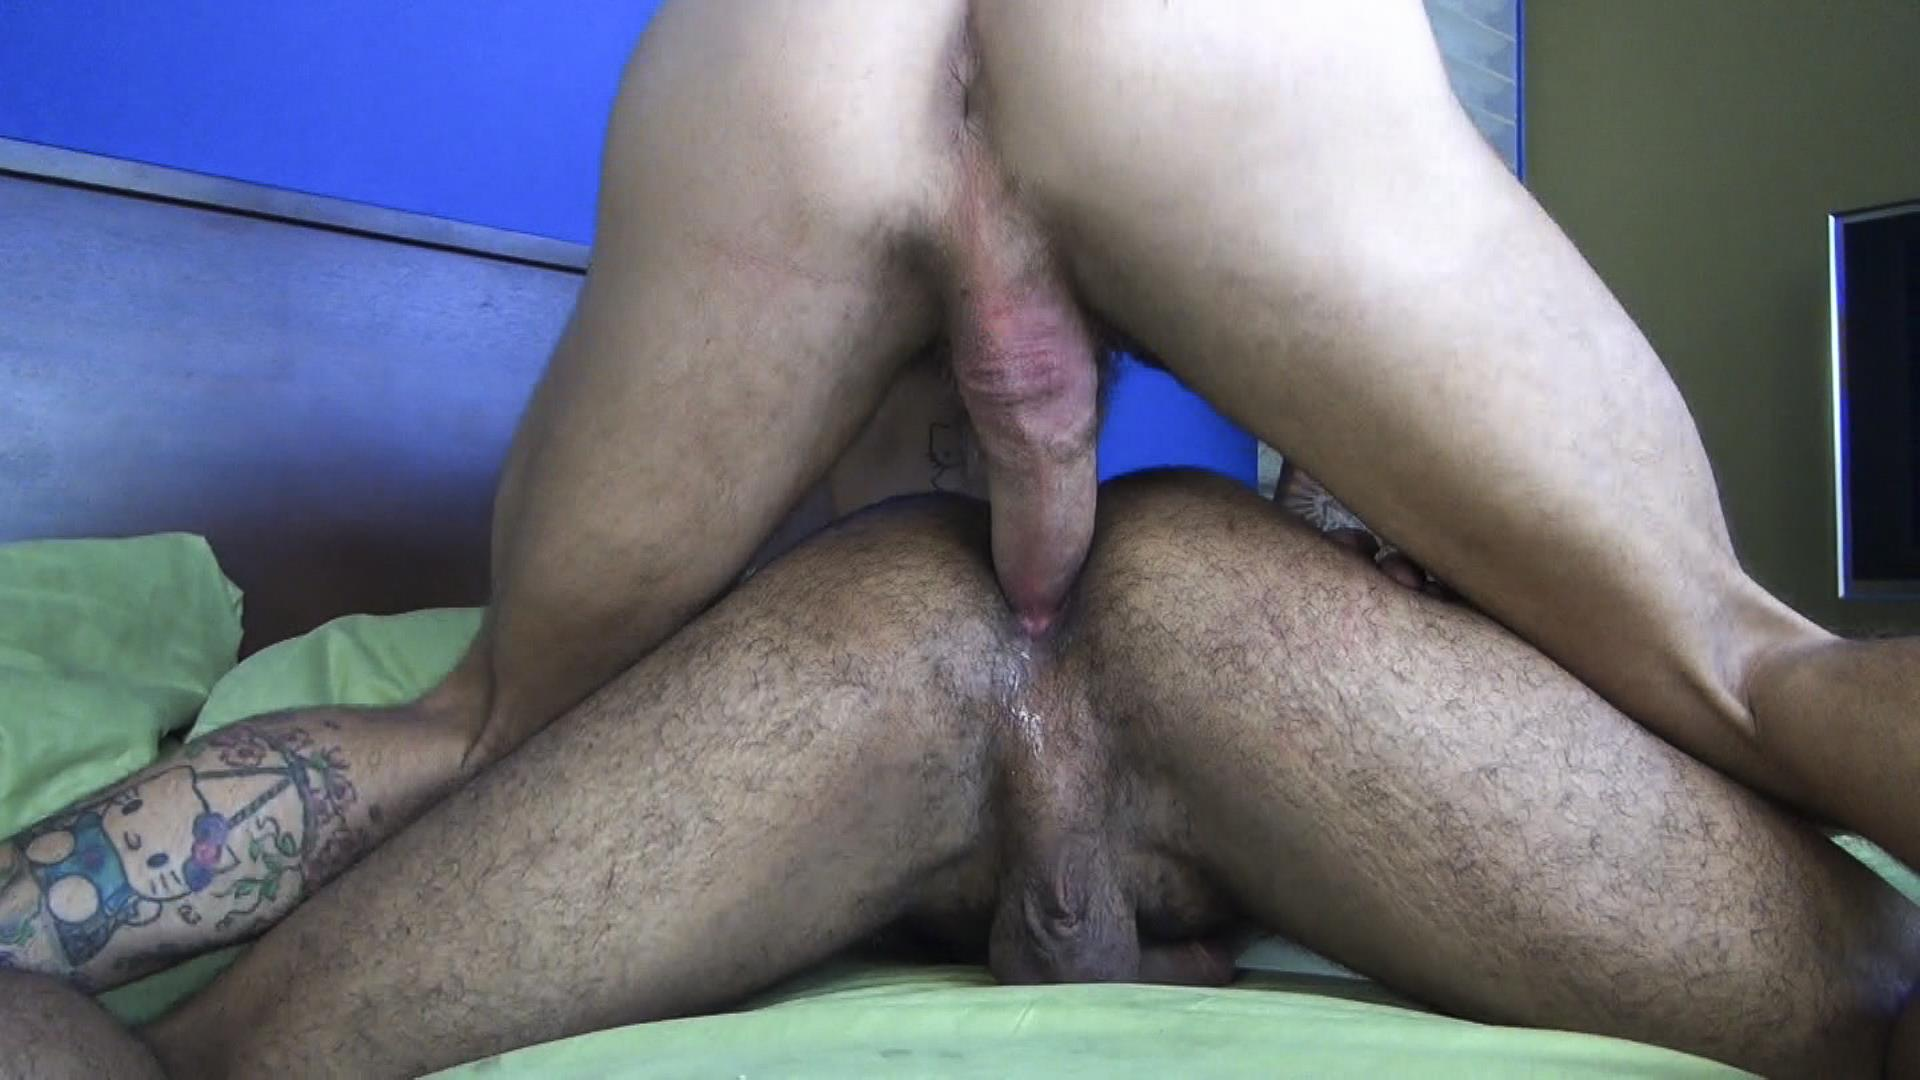 twinks taking multiple dildos boyfriendtv